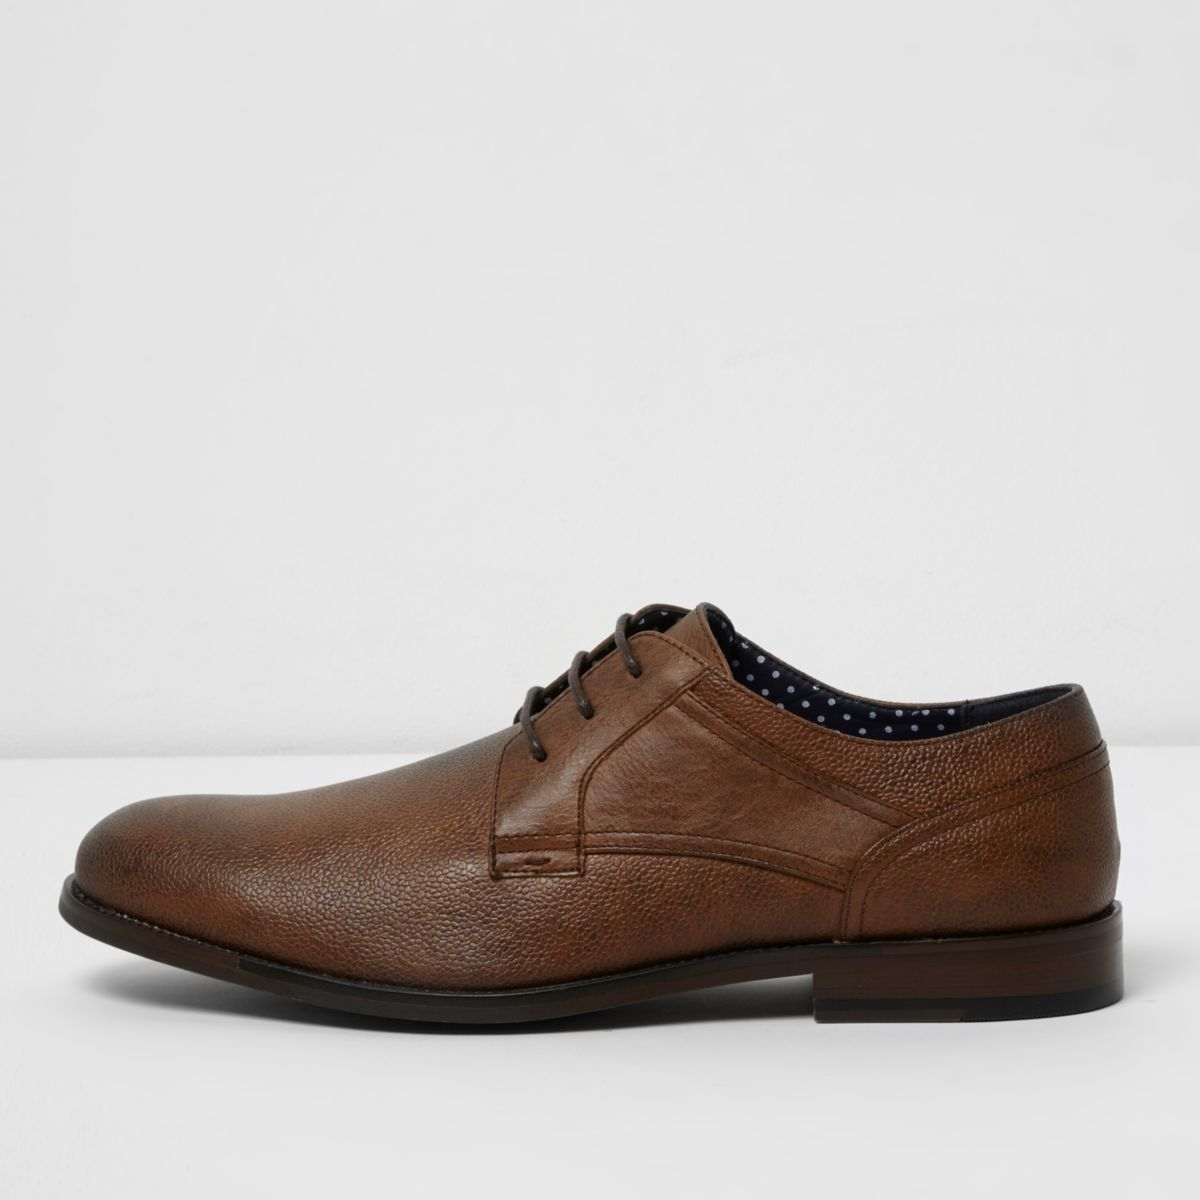 Tan brown round toe lace-up smart shoes